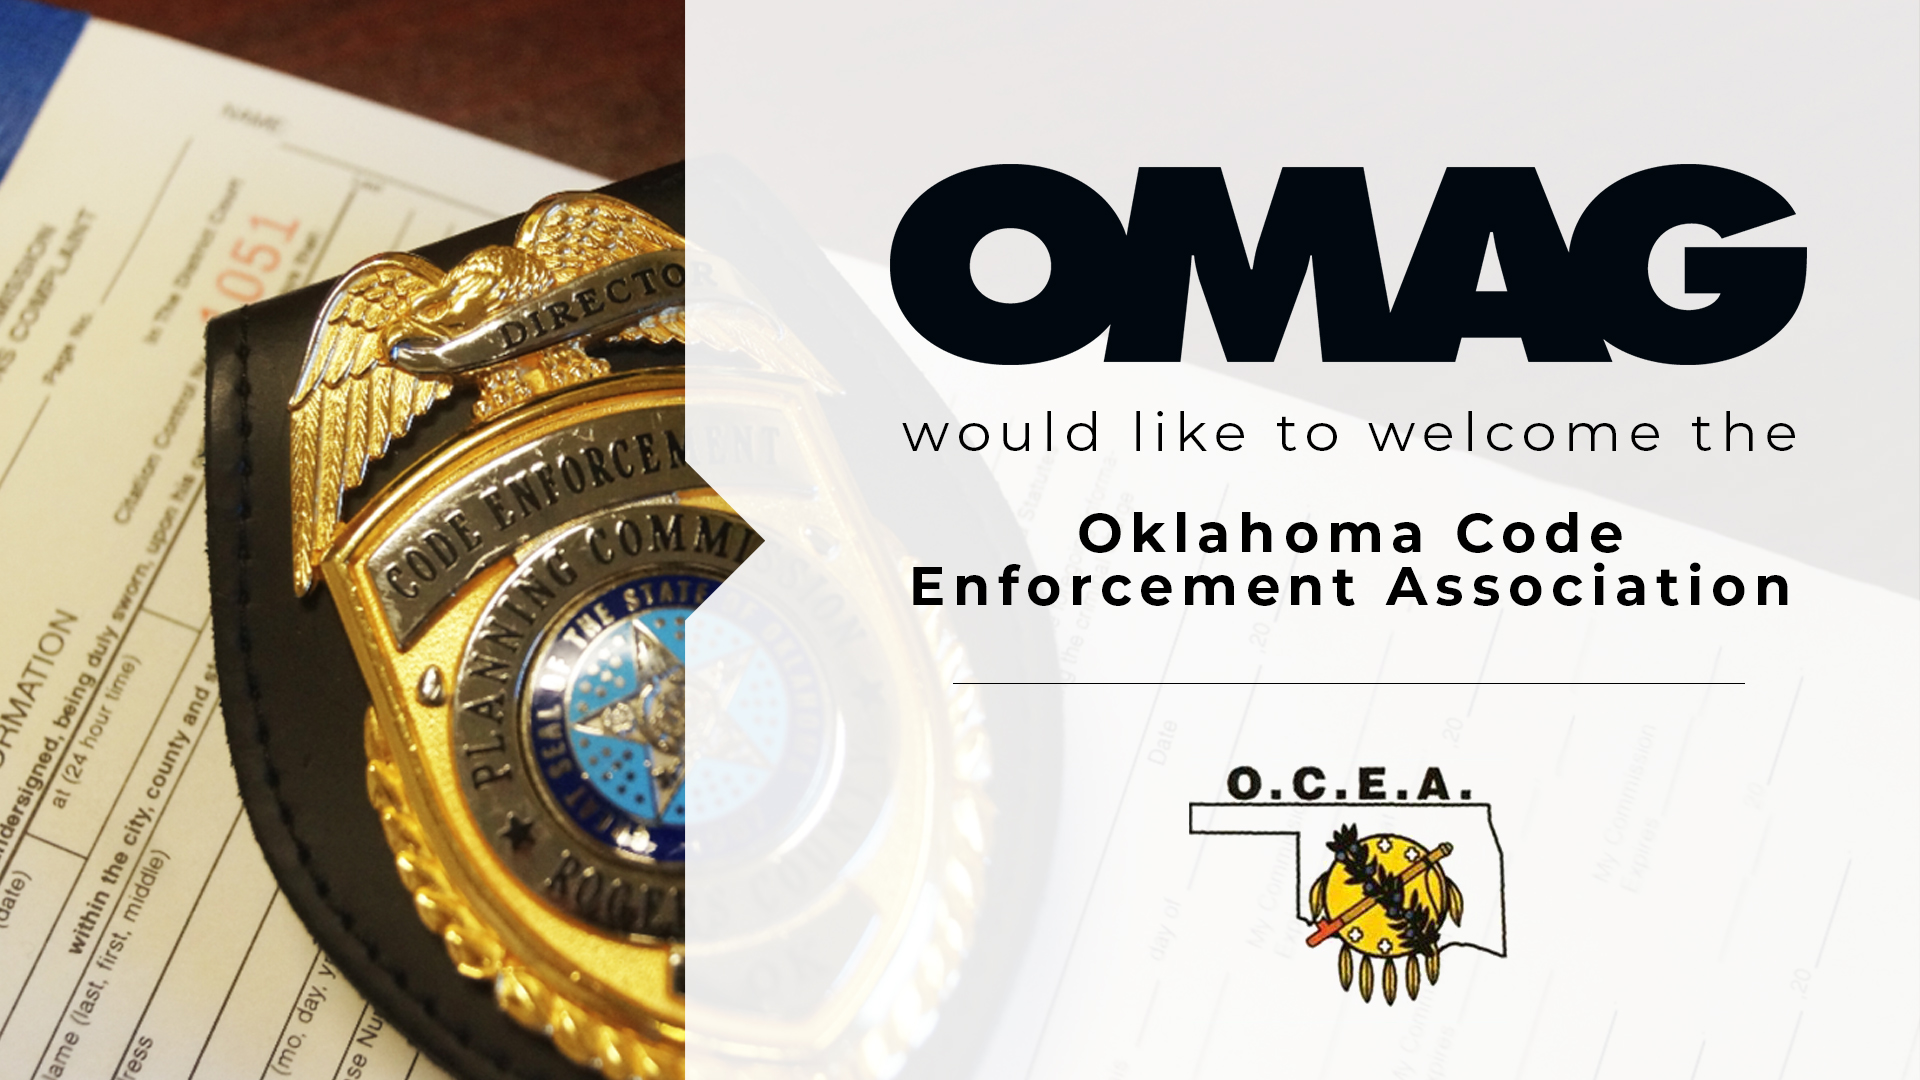 Oklahoma Code Enforcement Association.jpg